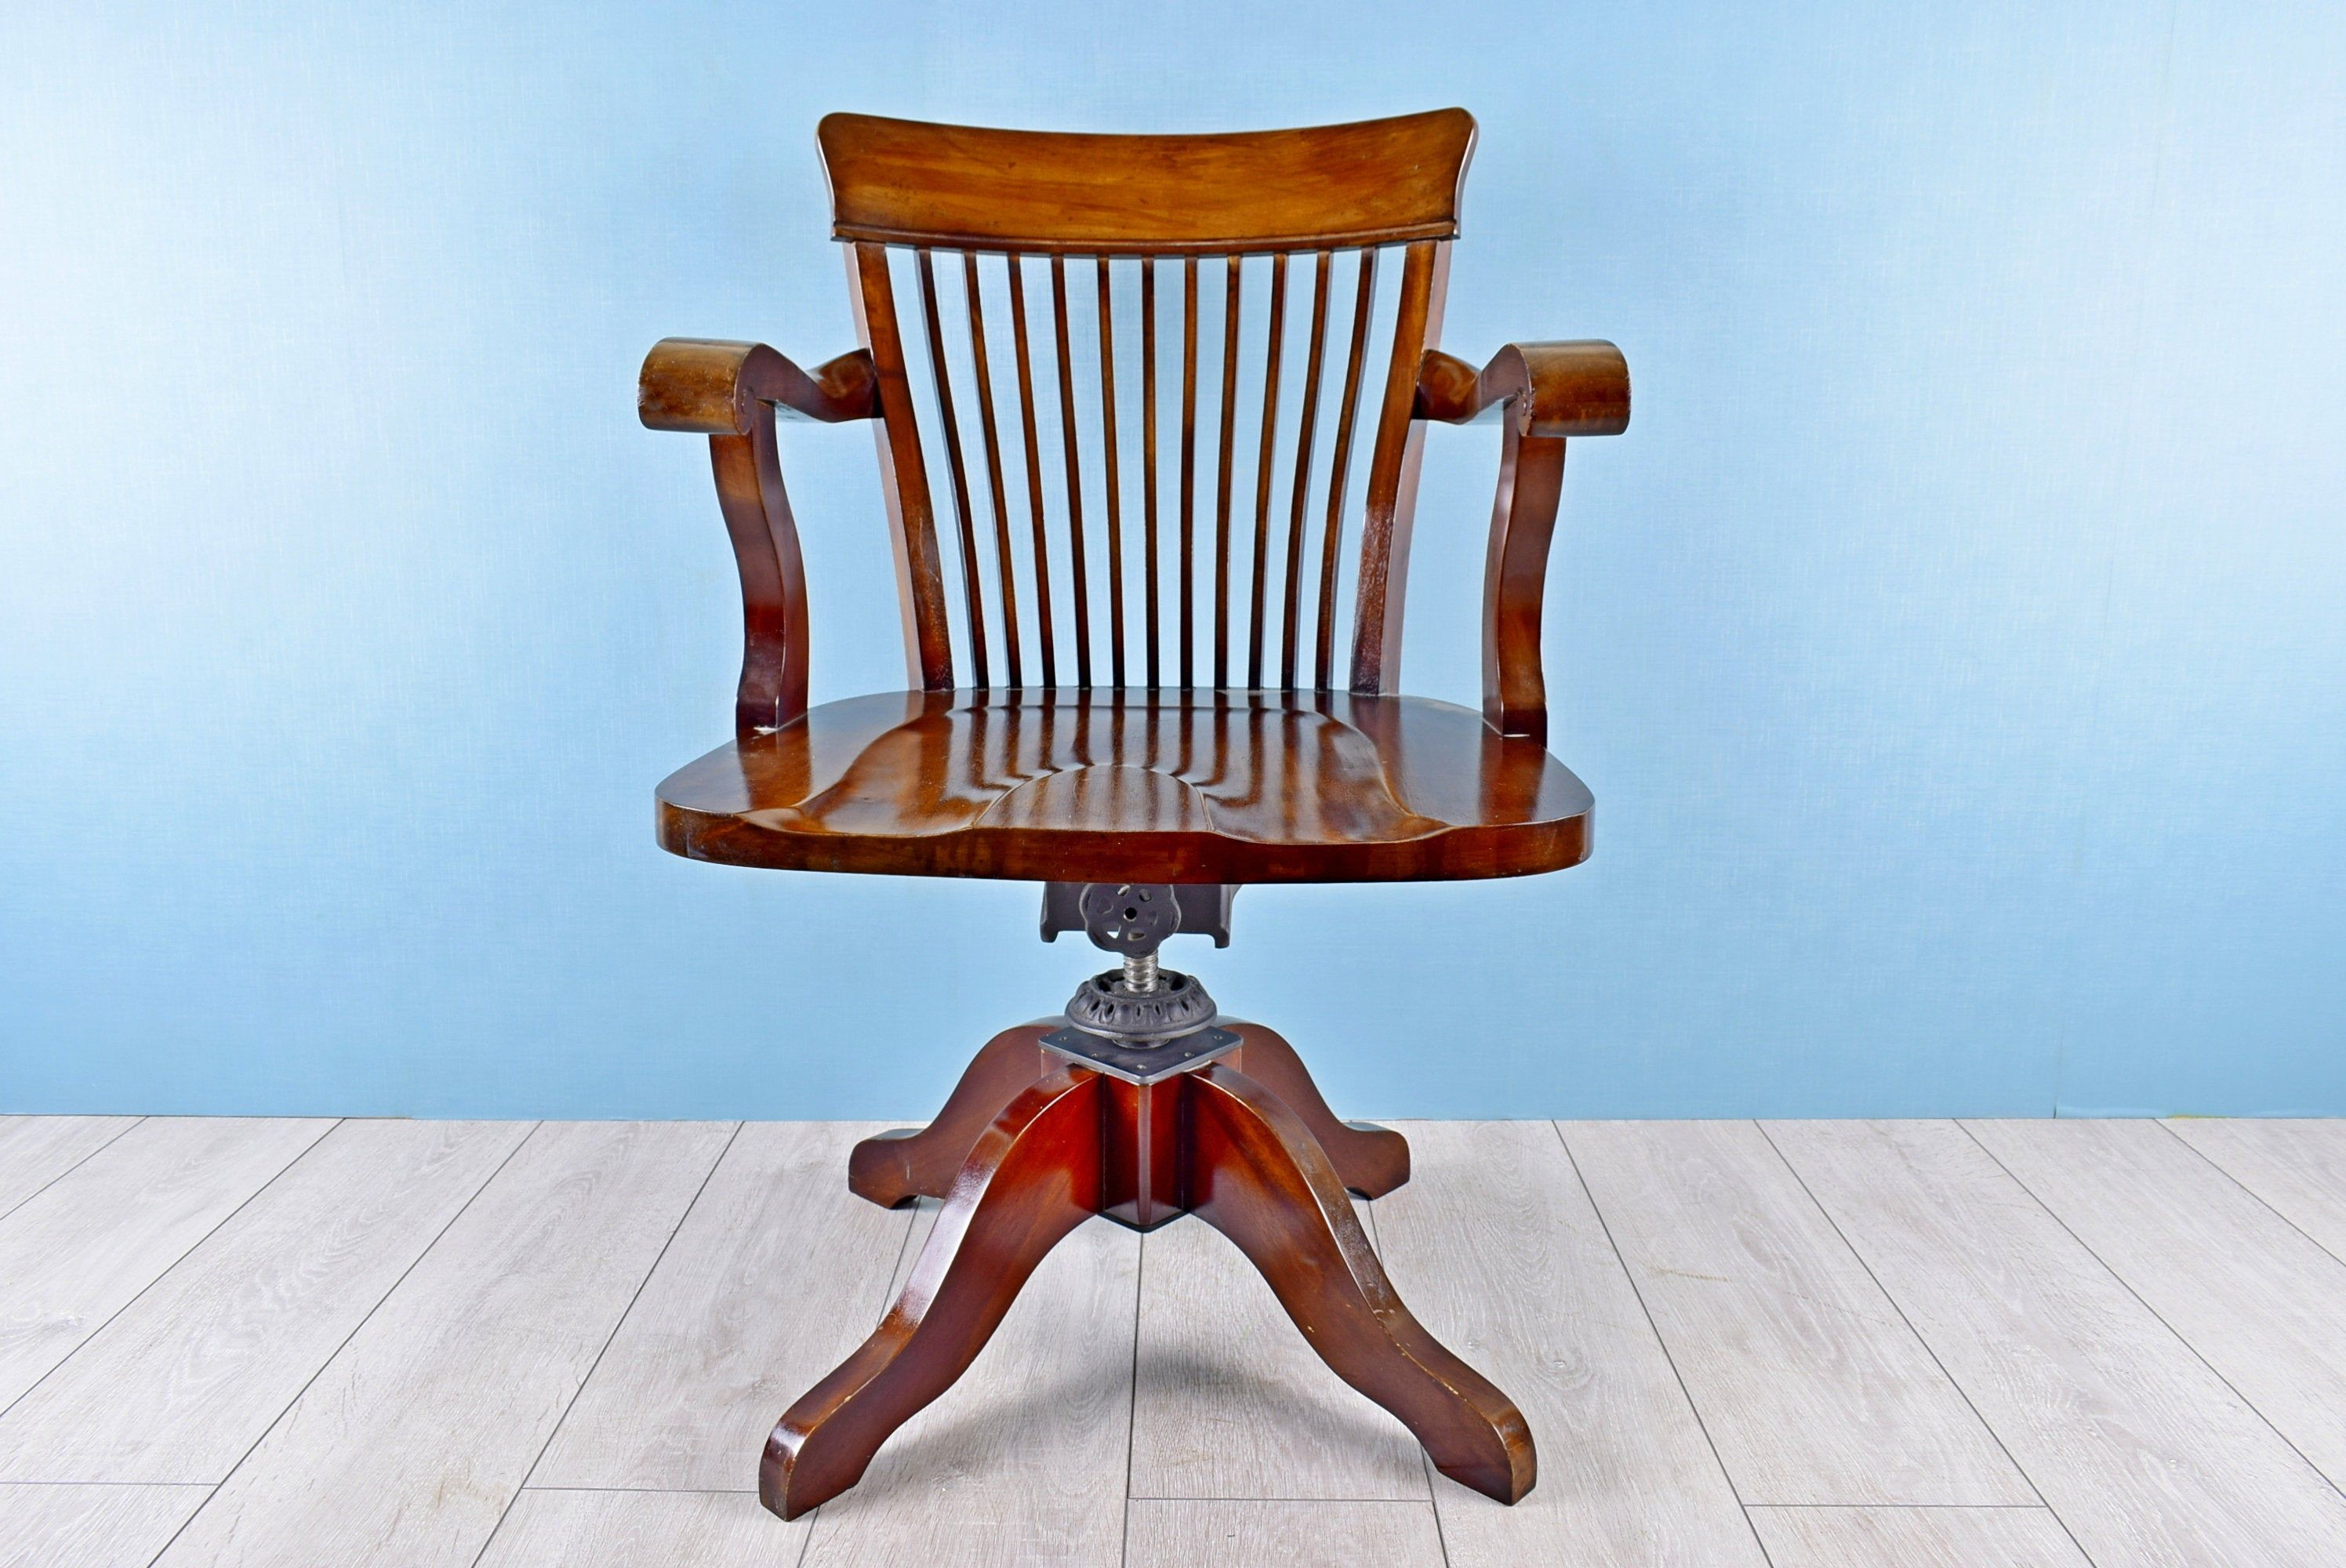 Antique Wooden Office Chair Windsor Swivel Desk Chair With Adjustable Height Rustic Workplace Accessory Home Office Furniture Uk 1900s In 2020